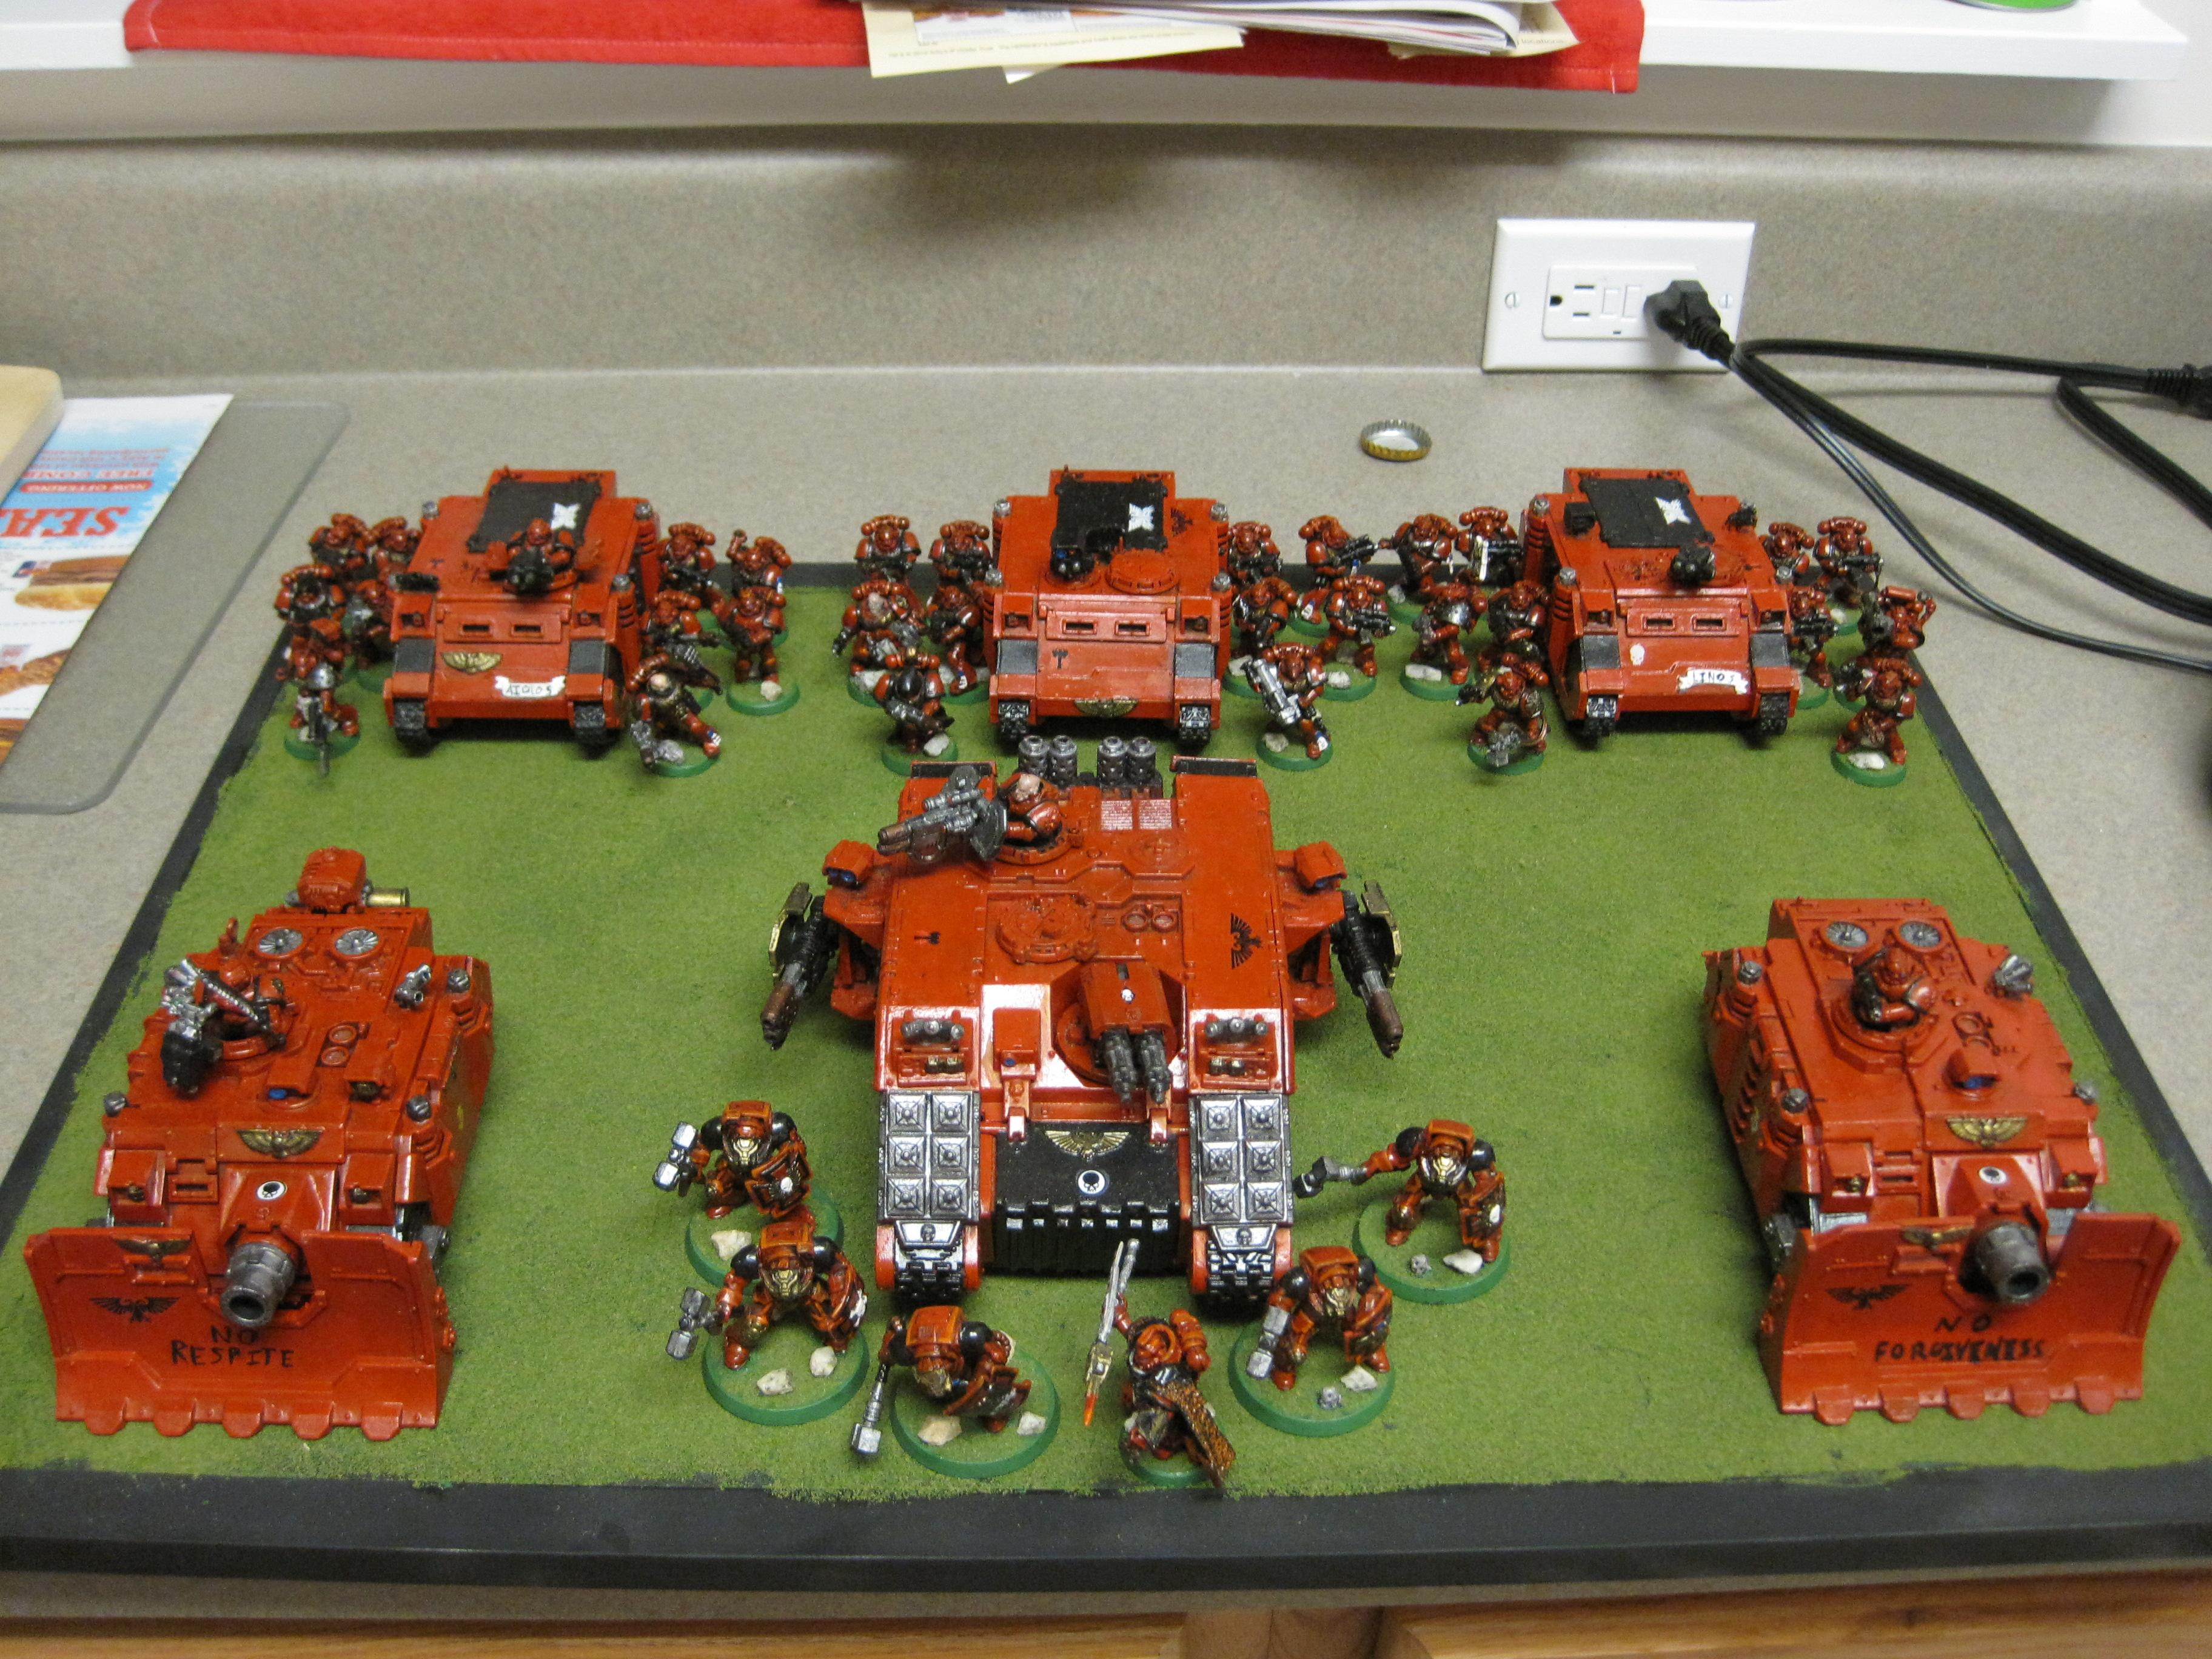 Home Brew, My Old Army, Self Made Chapter, Space Marines, Tank, Warhammer 40,000